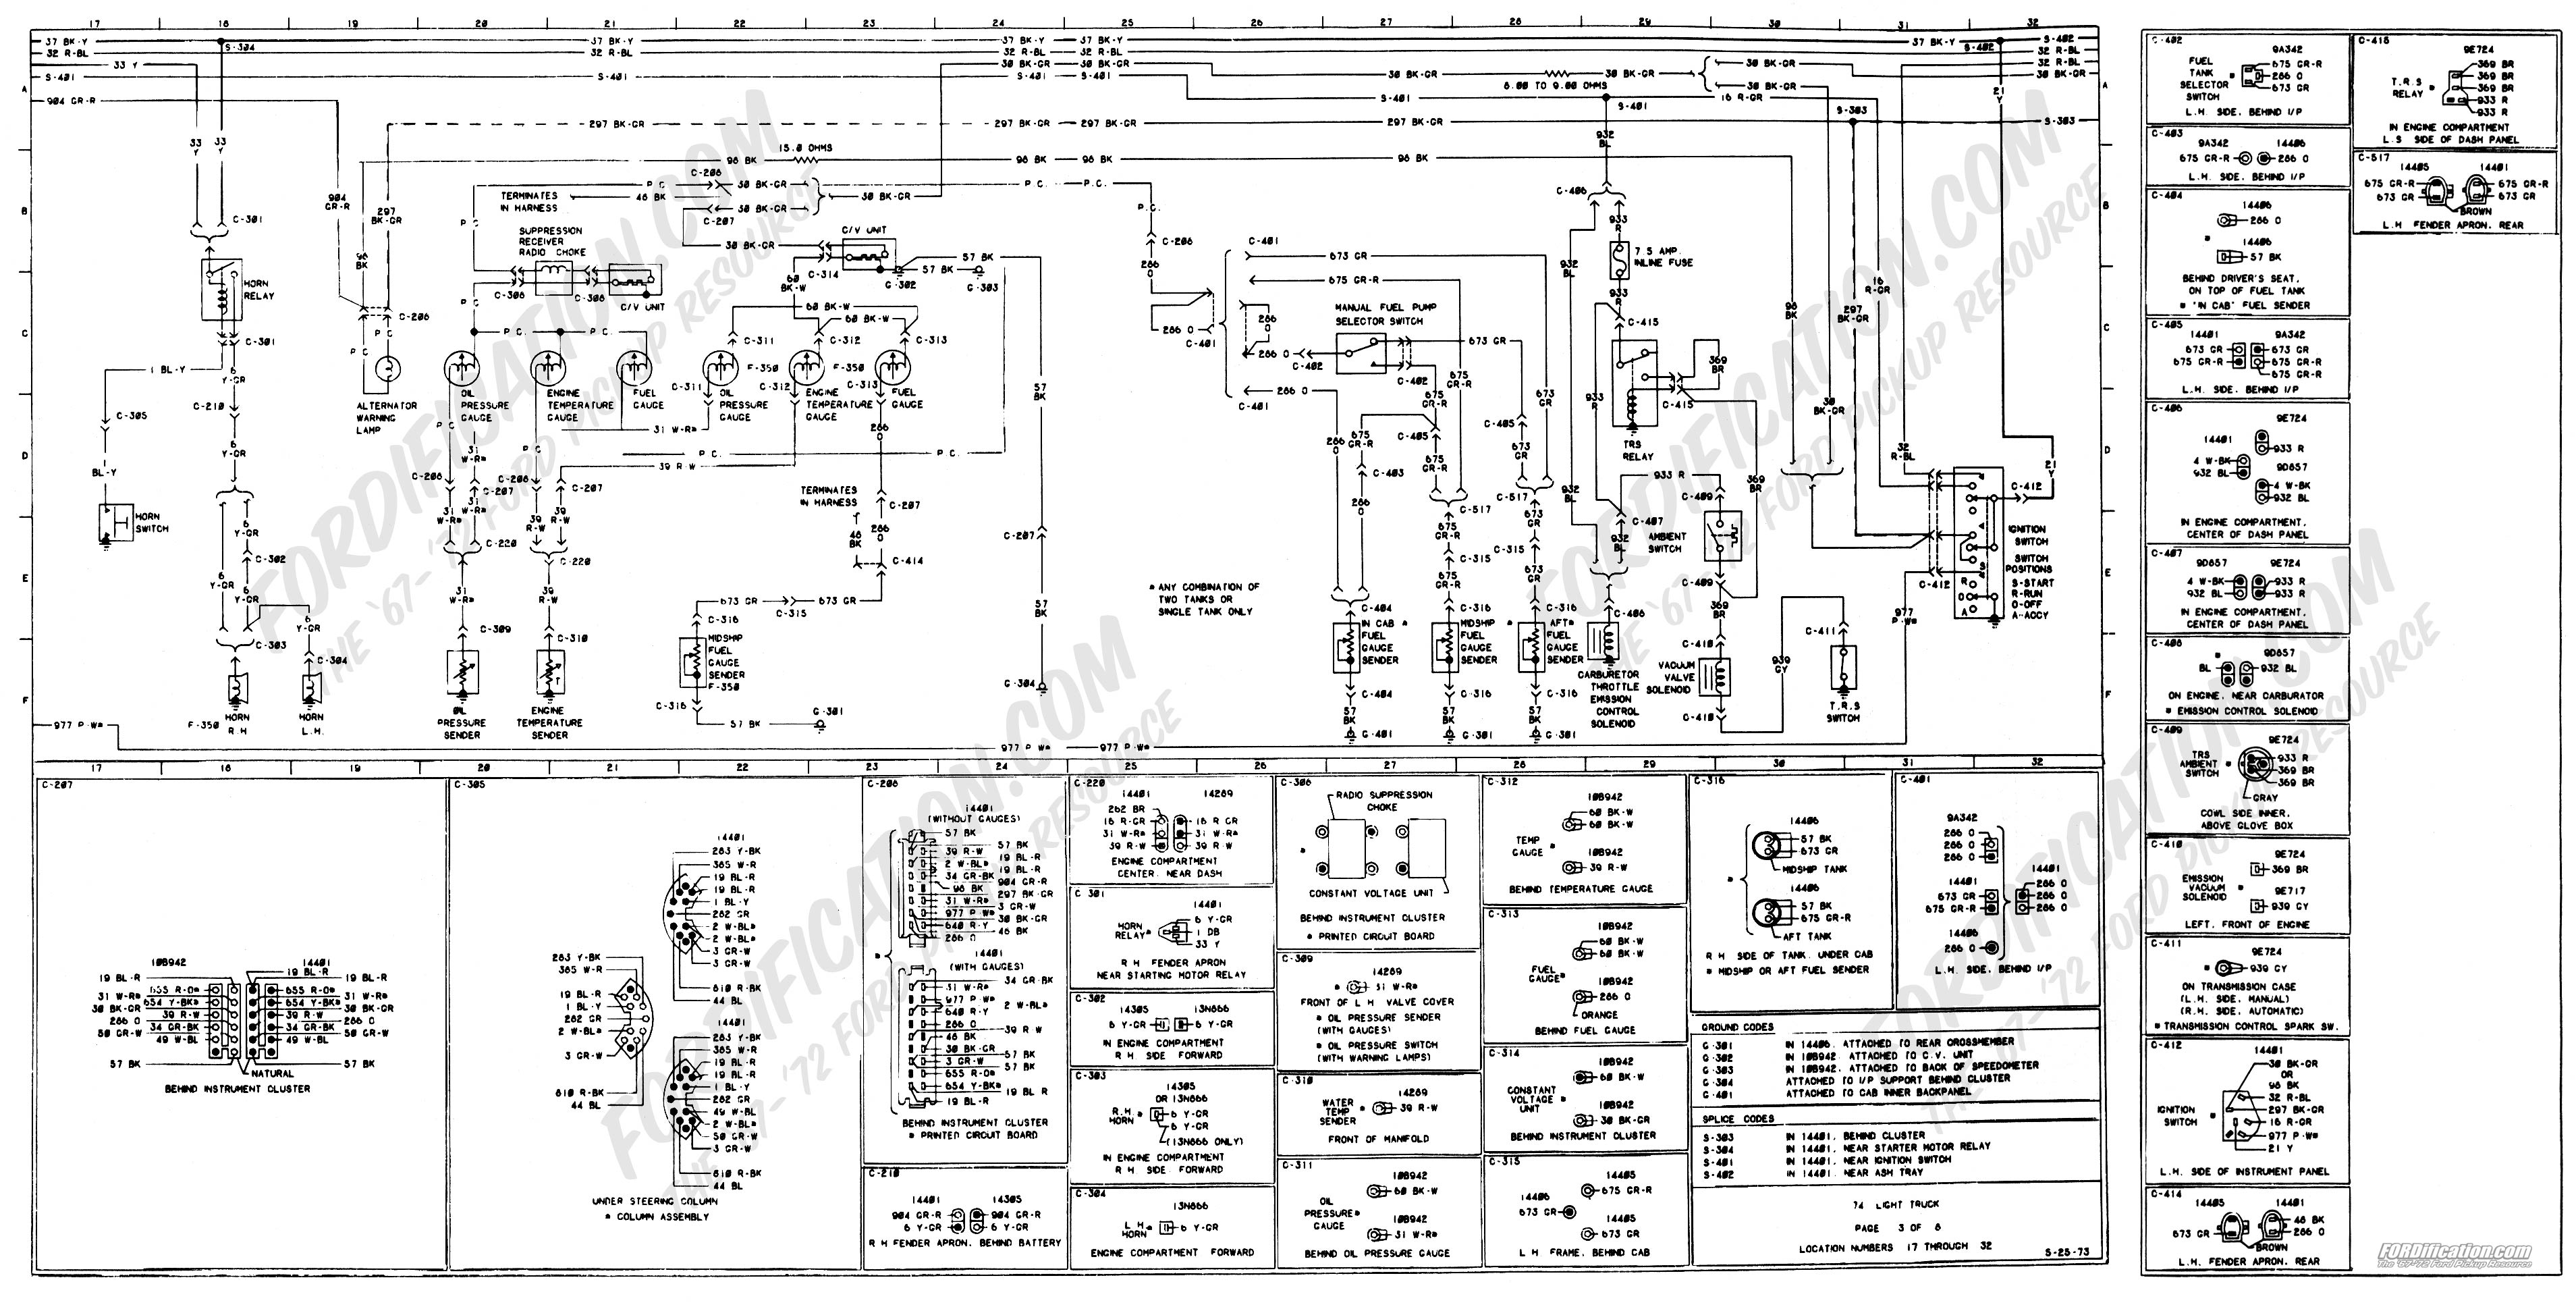 1973 1979 ford truck wiring diagrams schematics 1998 ford e250 van fuse  diagram 1998 ford e250 wiring diagram